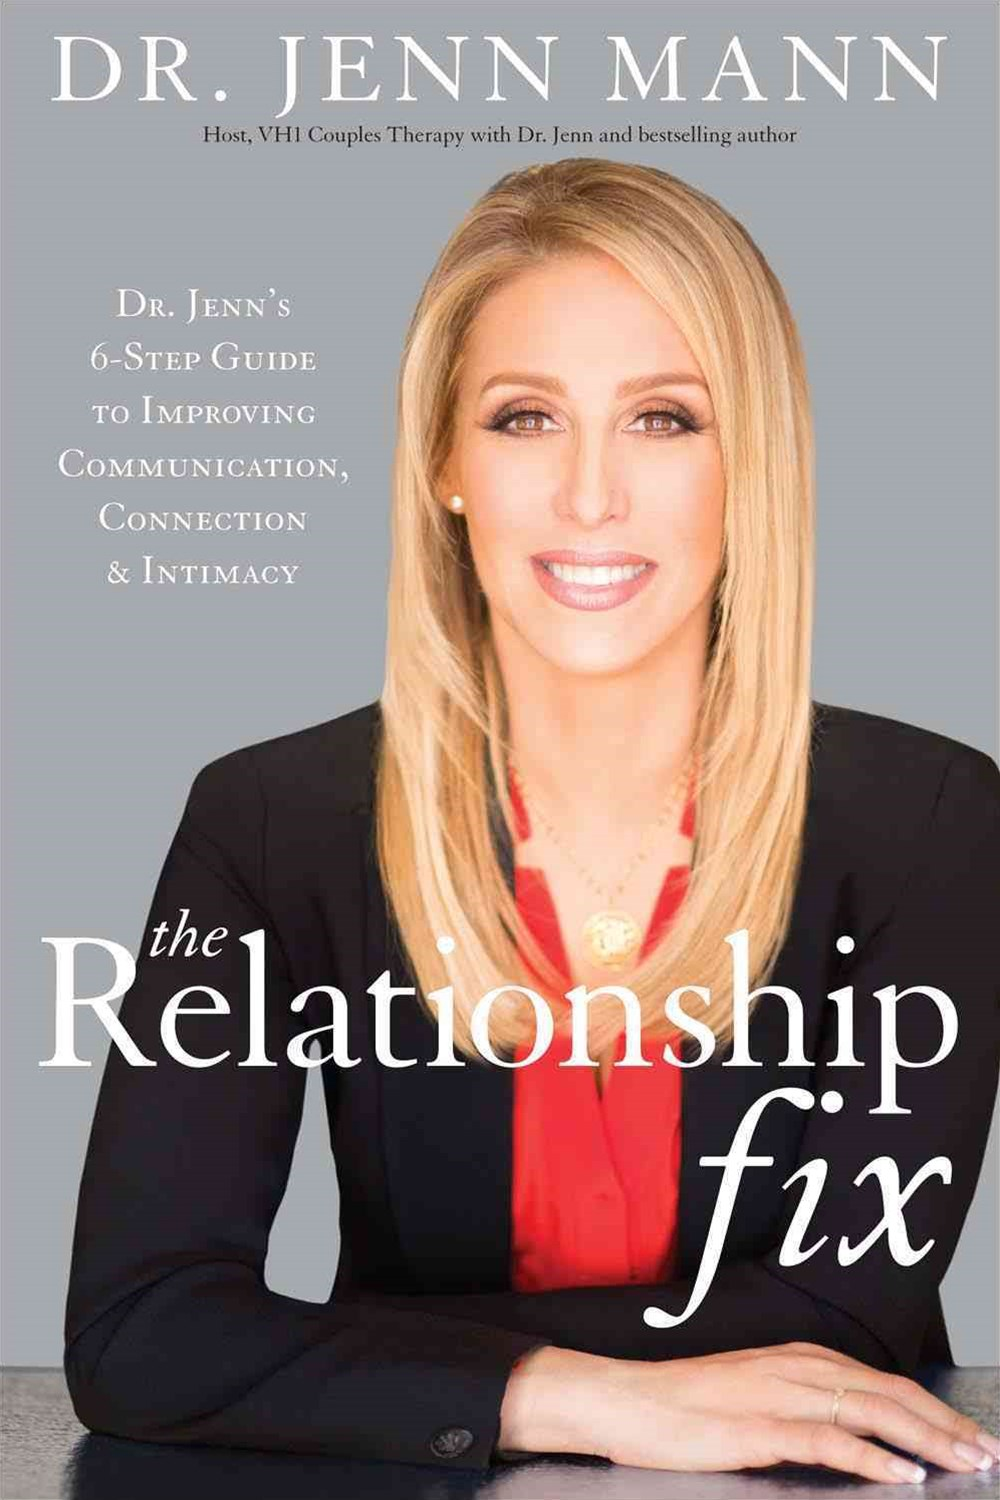 The Relationship Fix